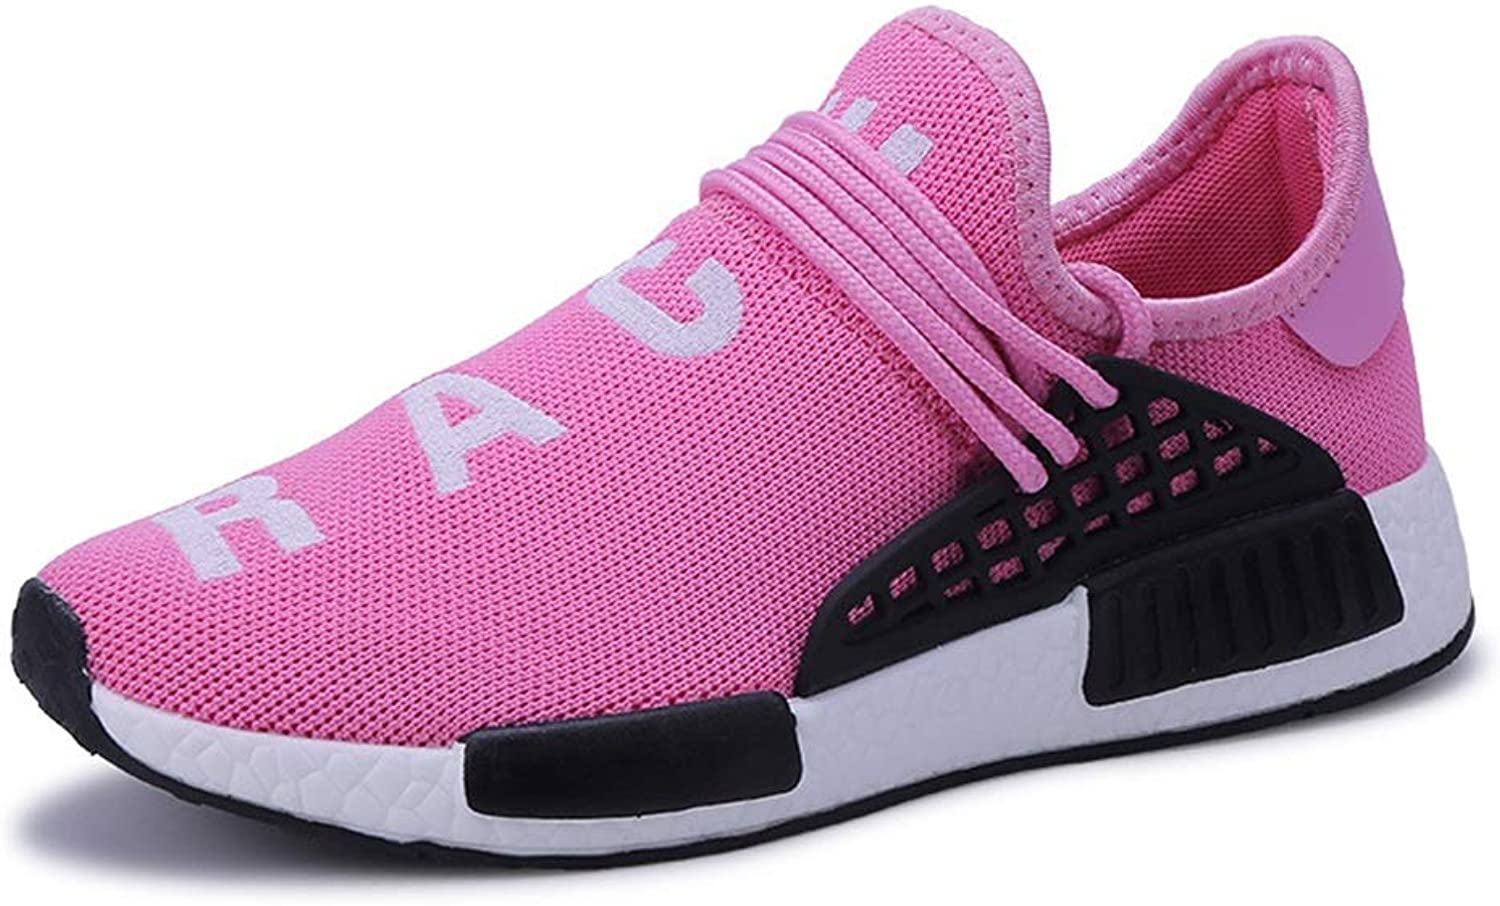 Women's Casual shoes, 2018 Autumn The Large Size Trend Running shoes Male and Female Couples Flying Woven Sports shoes